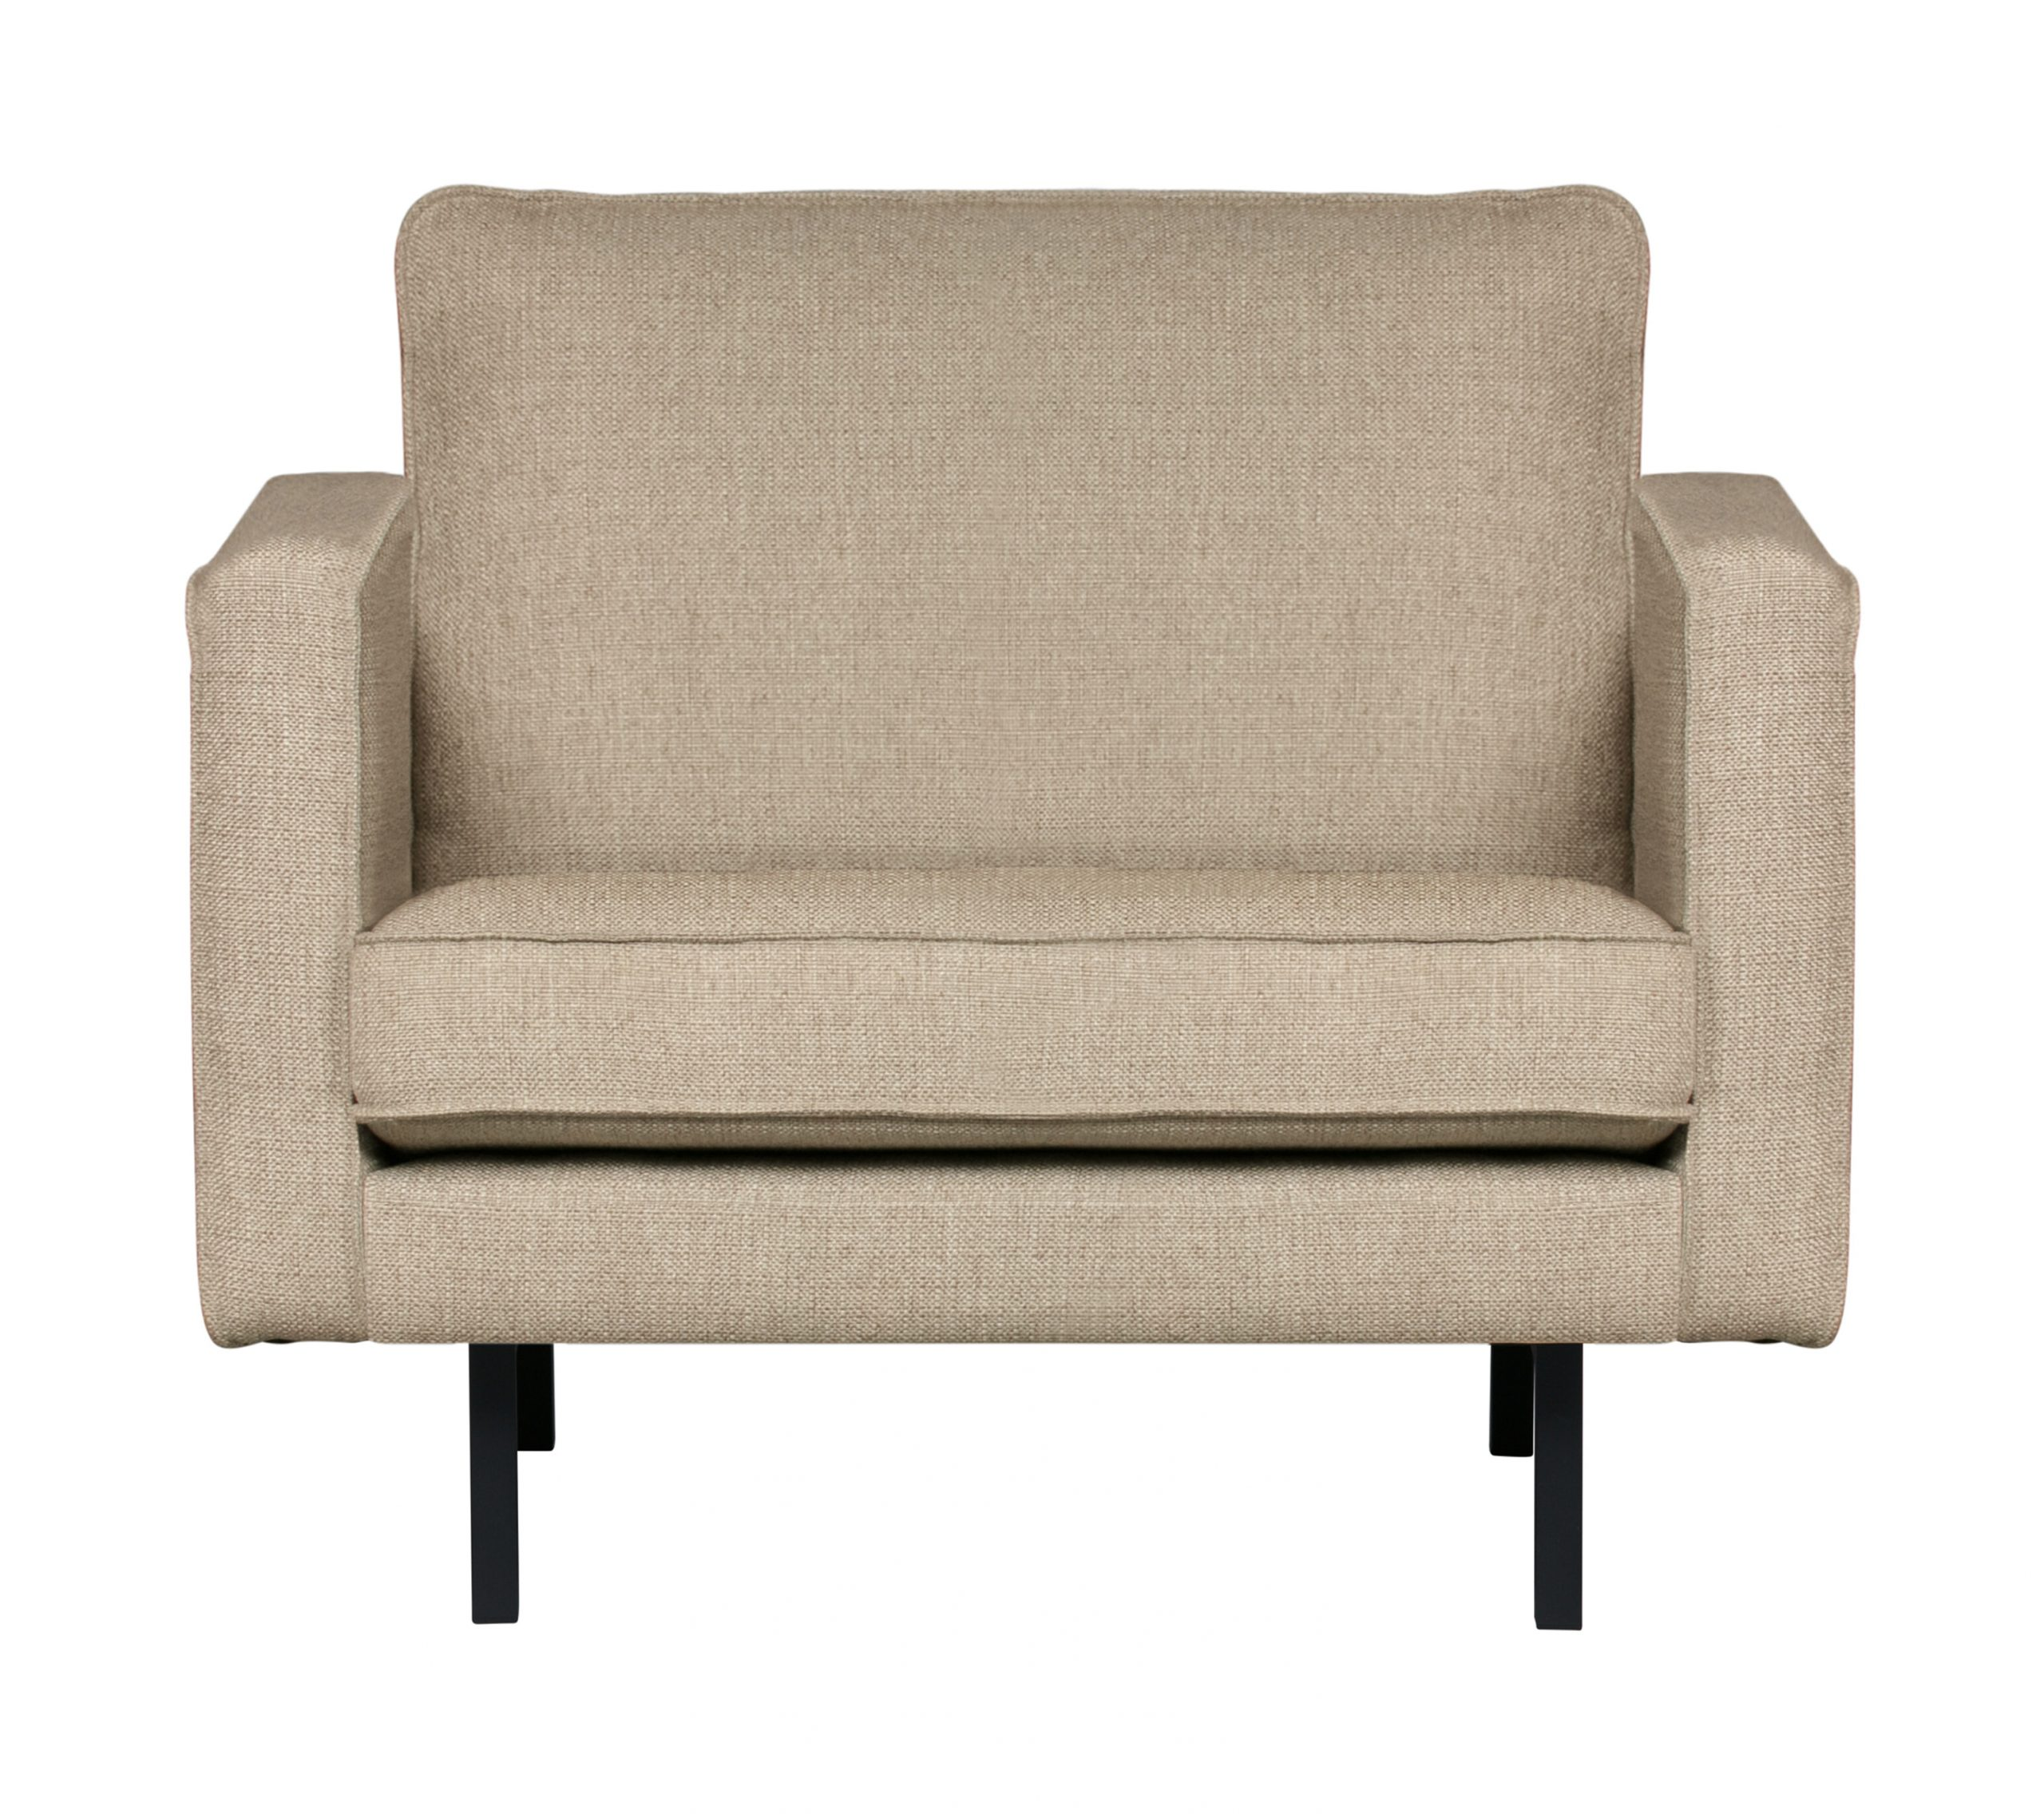 BePureHome Fauteuil 'Rodeo' Stretched, kleur Sahara | BePureHome